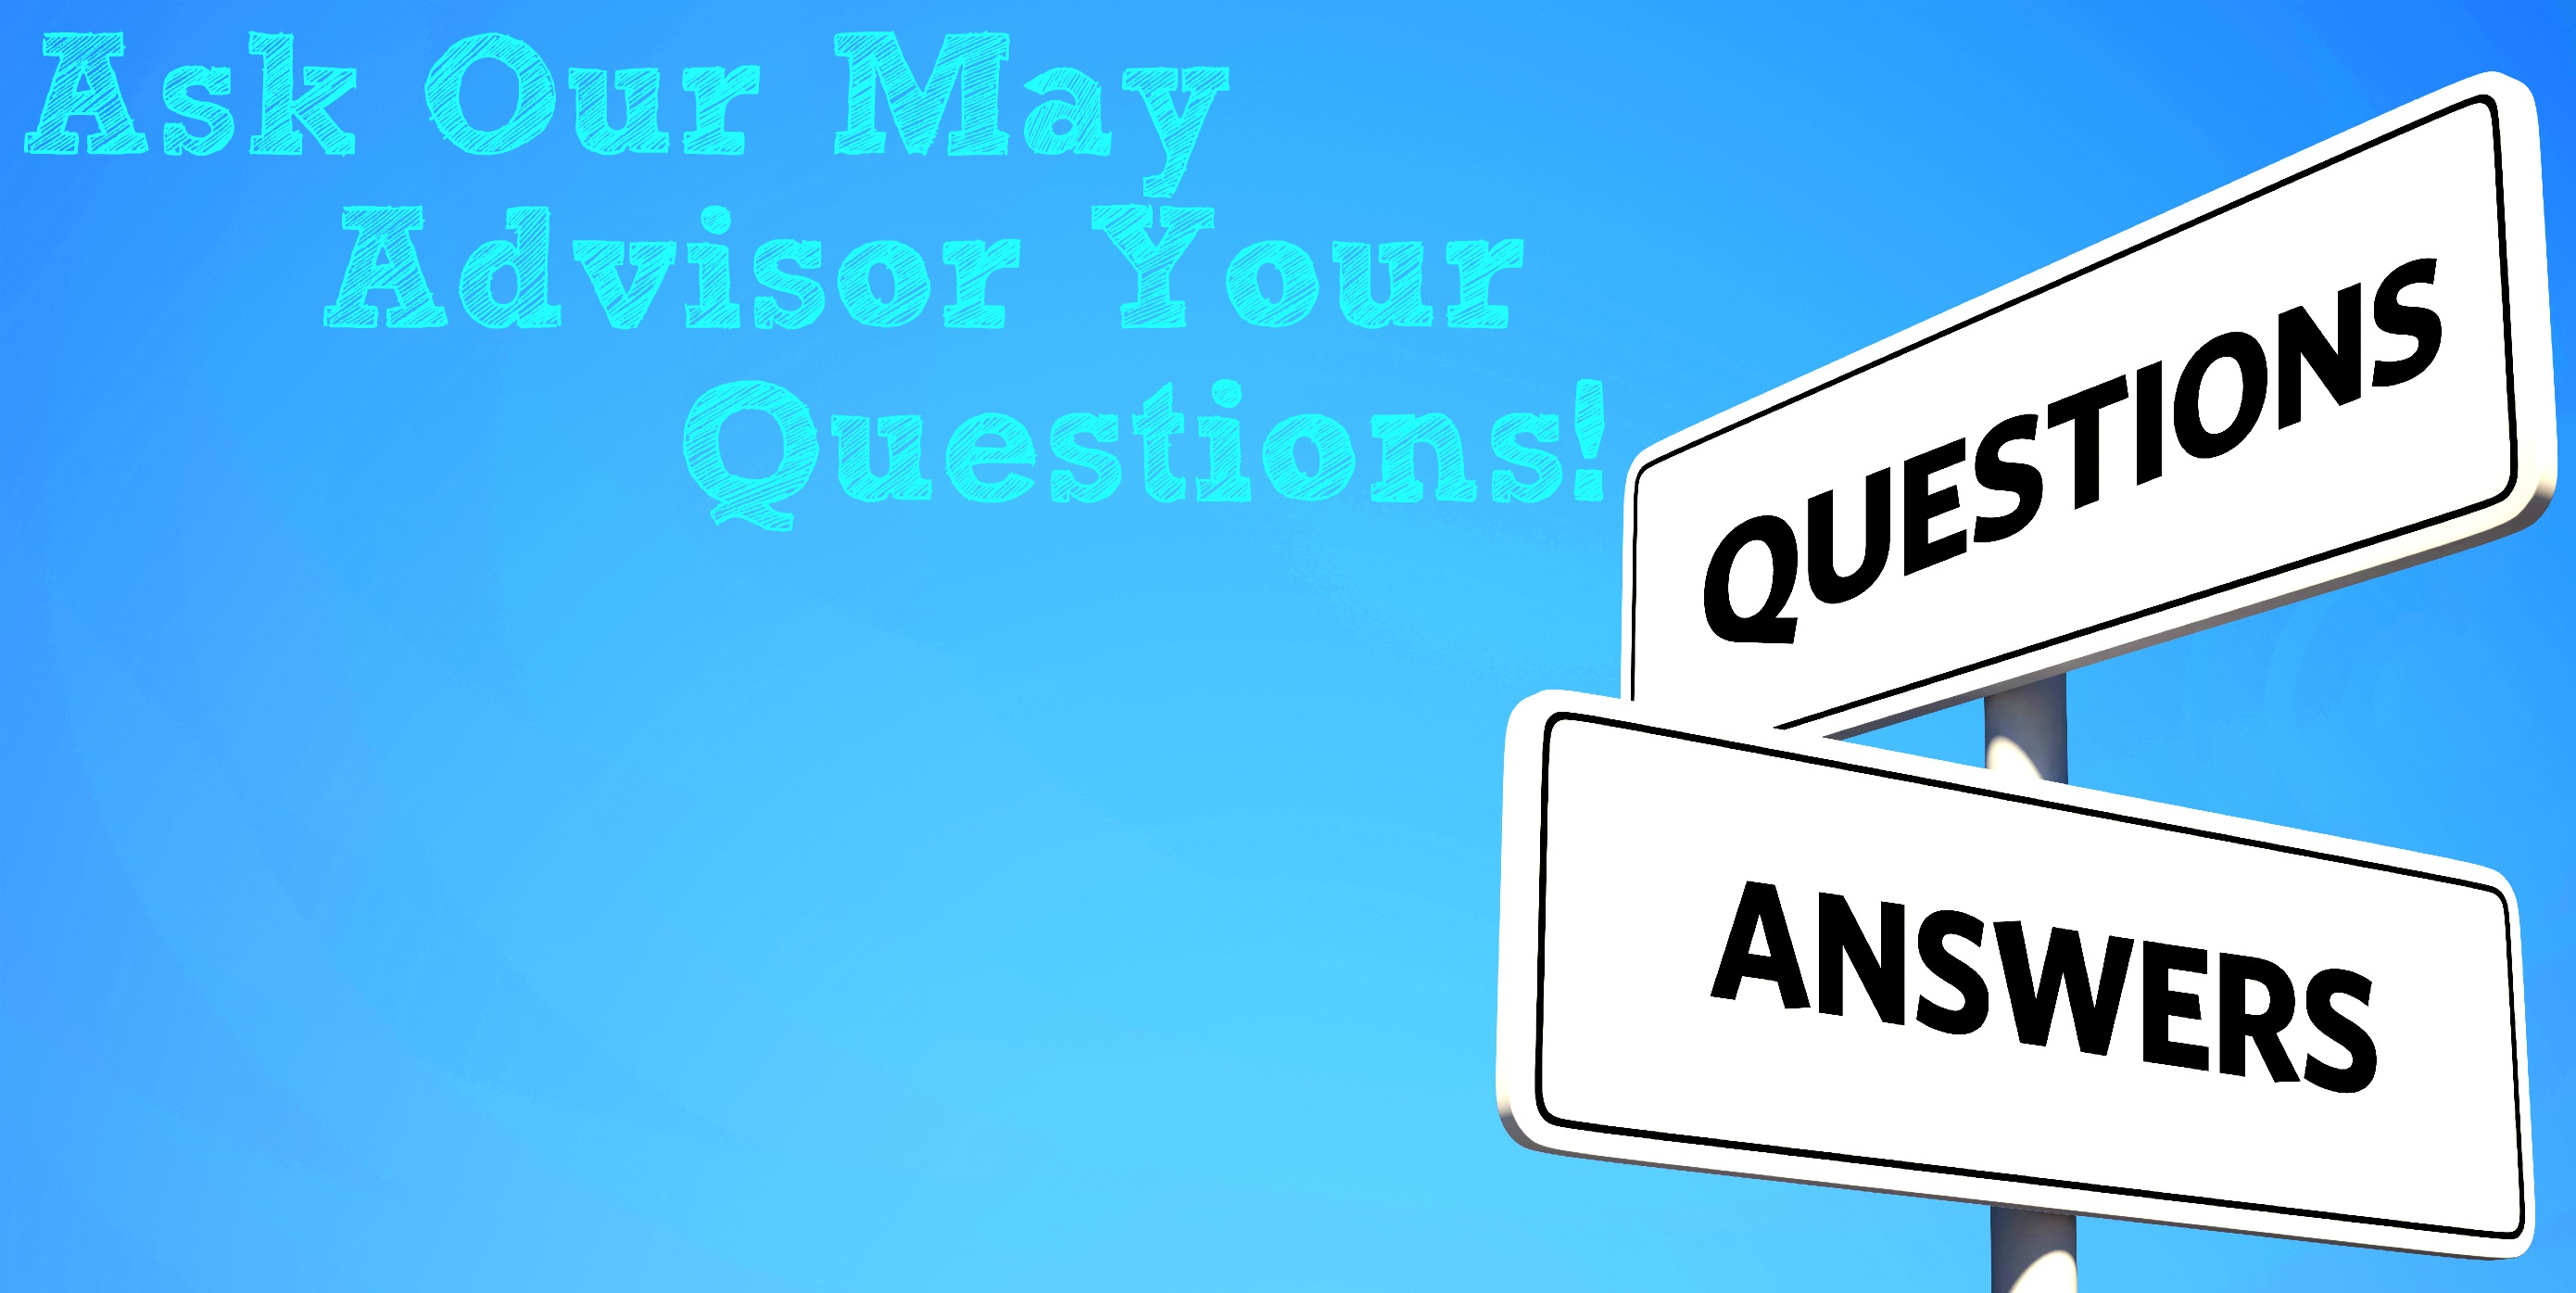 ask our may advisor your question